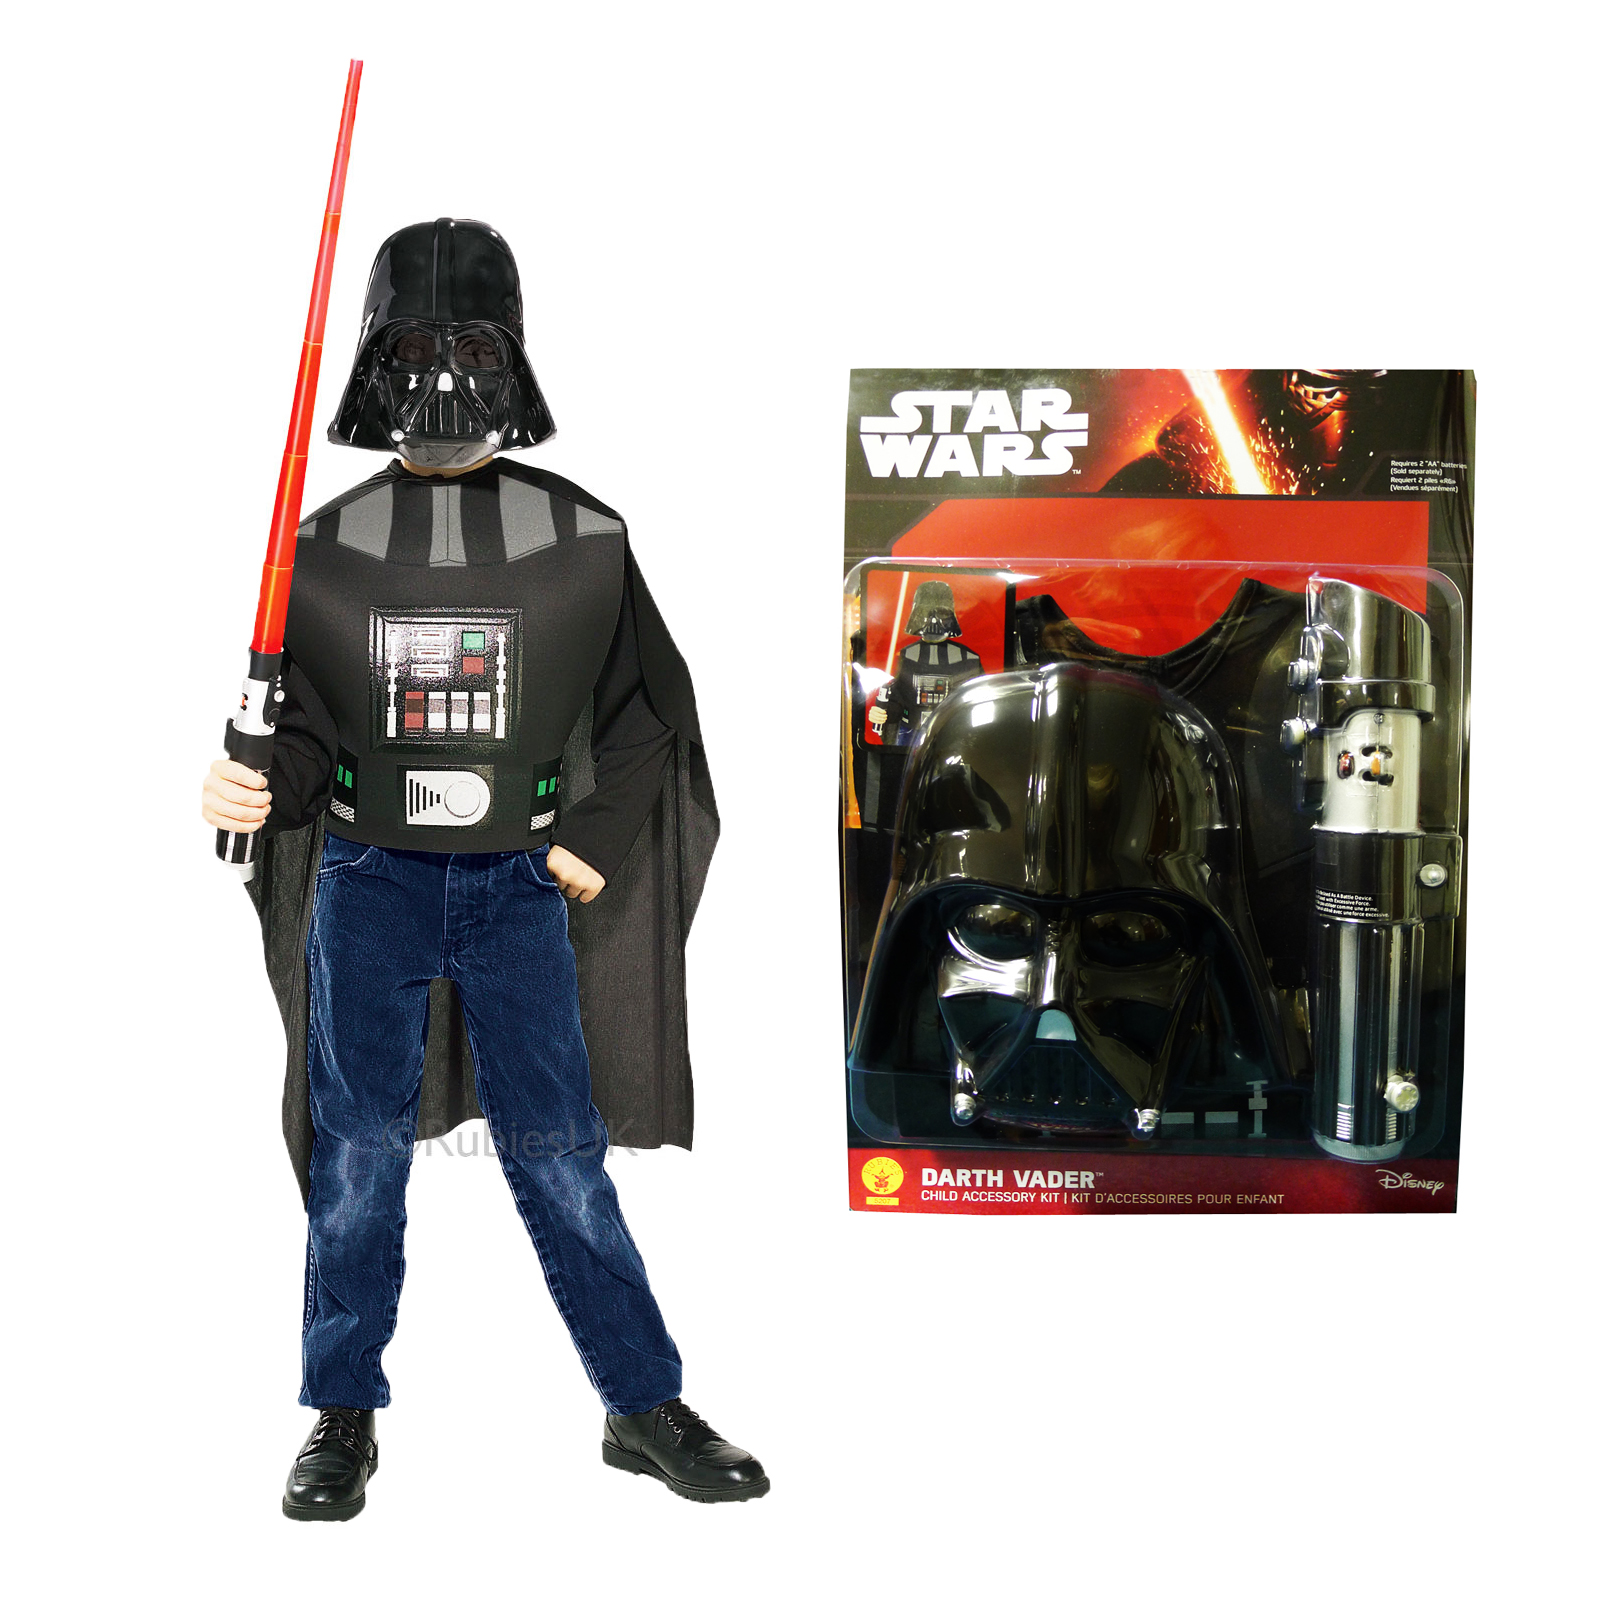 Star Wars Bettwäsche Leuchtend Kinder Darth Vader Kostüm Rubies Leuchtend Lightsaber Star